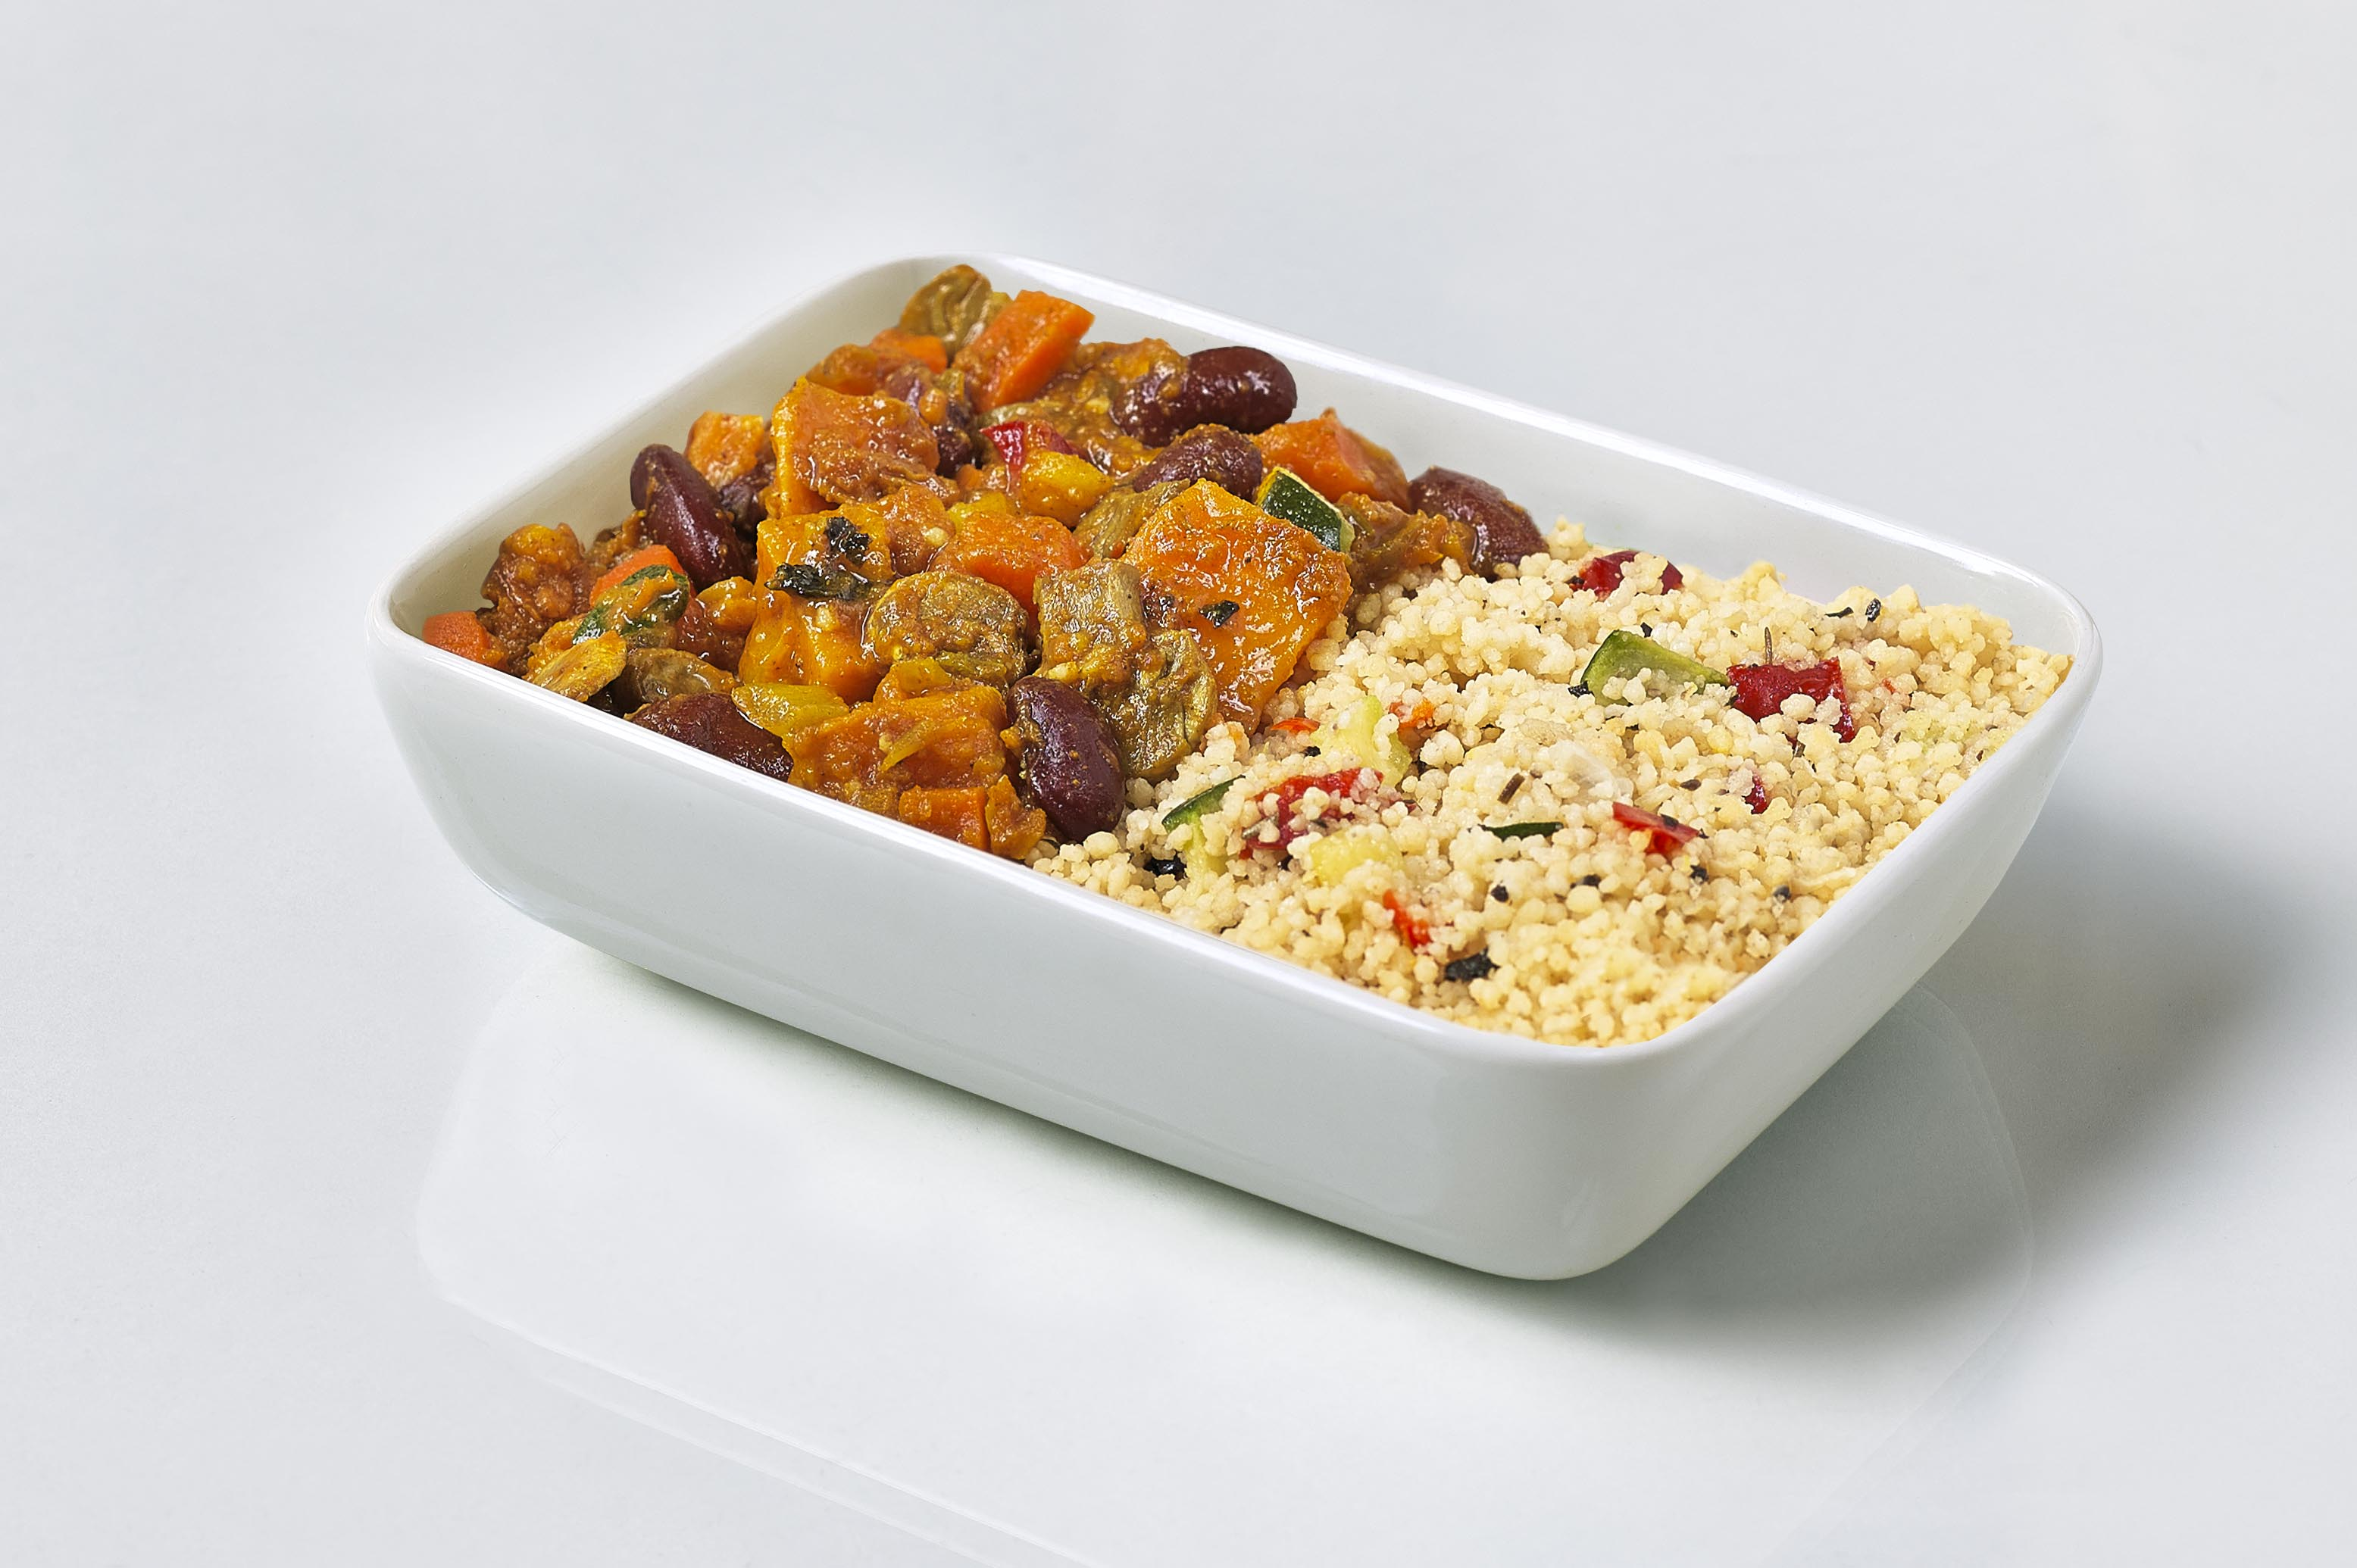 VEGAN TAGINE MEAL